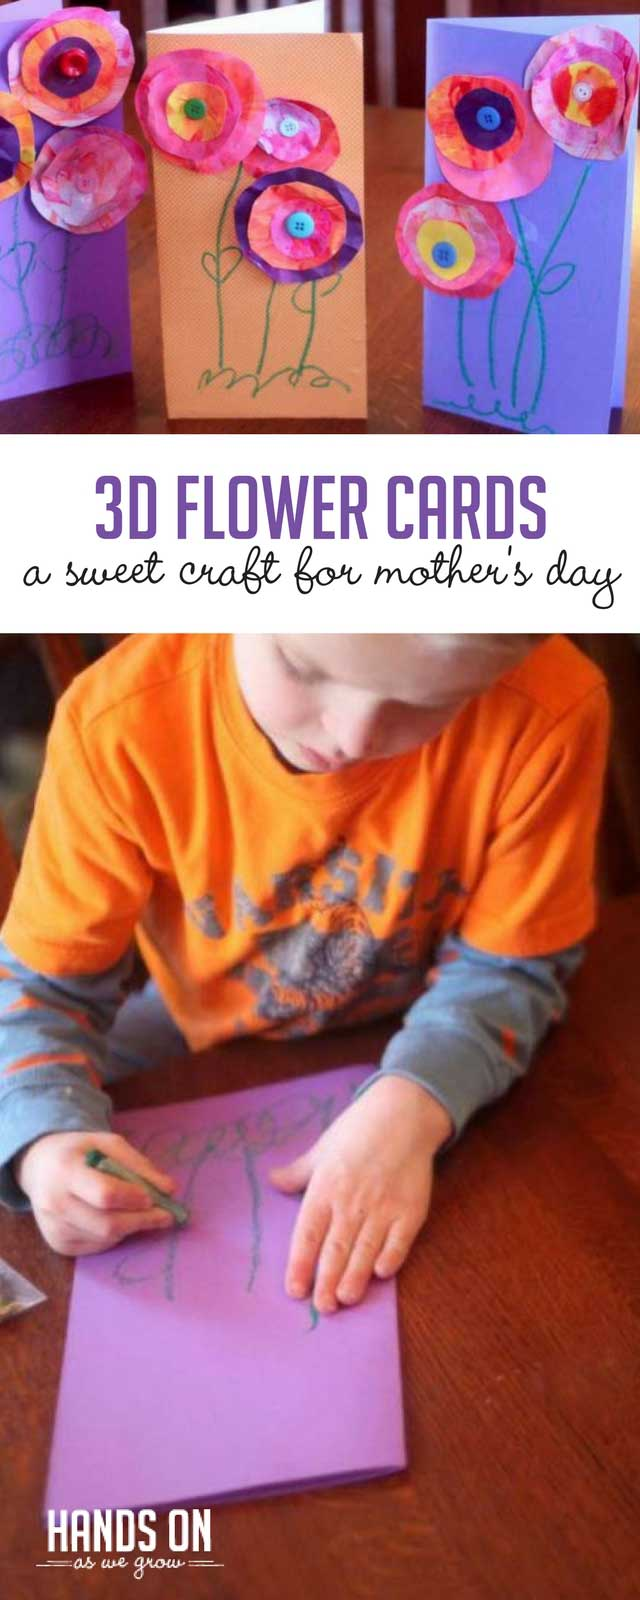 A 3D flower card is the perfect Mother's Day craft for kids to make! Craft these colorful cards with your children. It's a perfect art project for preschoolers and toddlers, with a little help. Moms, Aunts, and Grandmas will all love these sweet homemade cards!